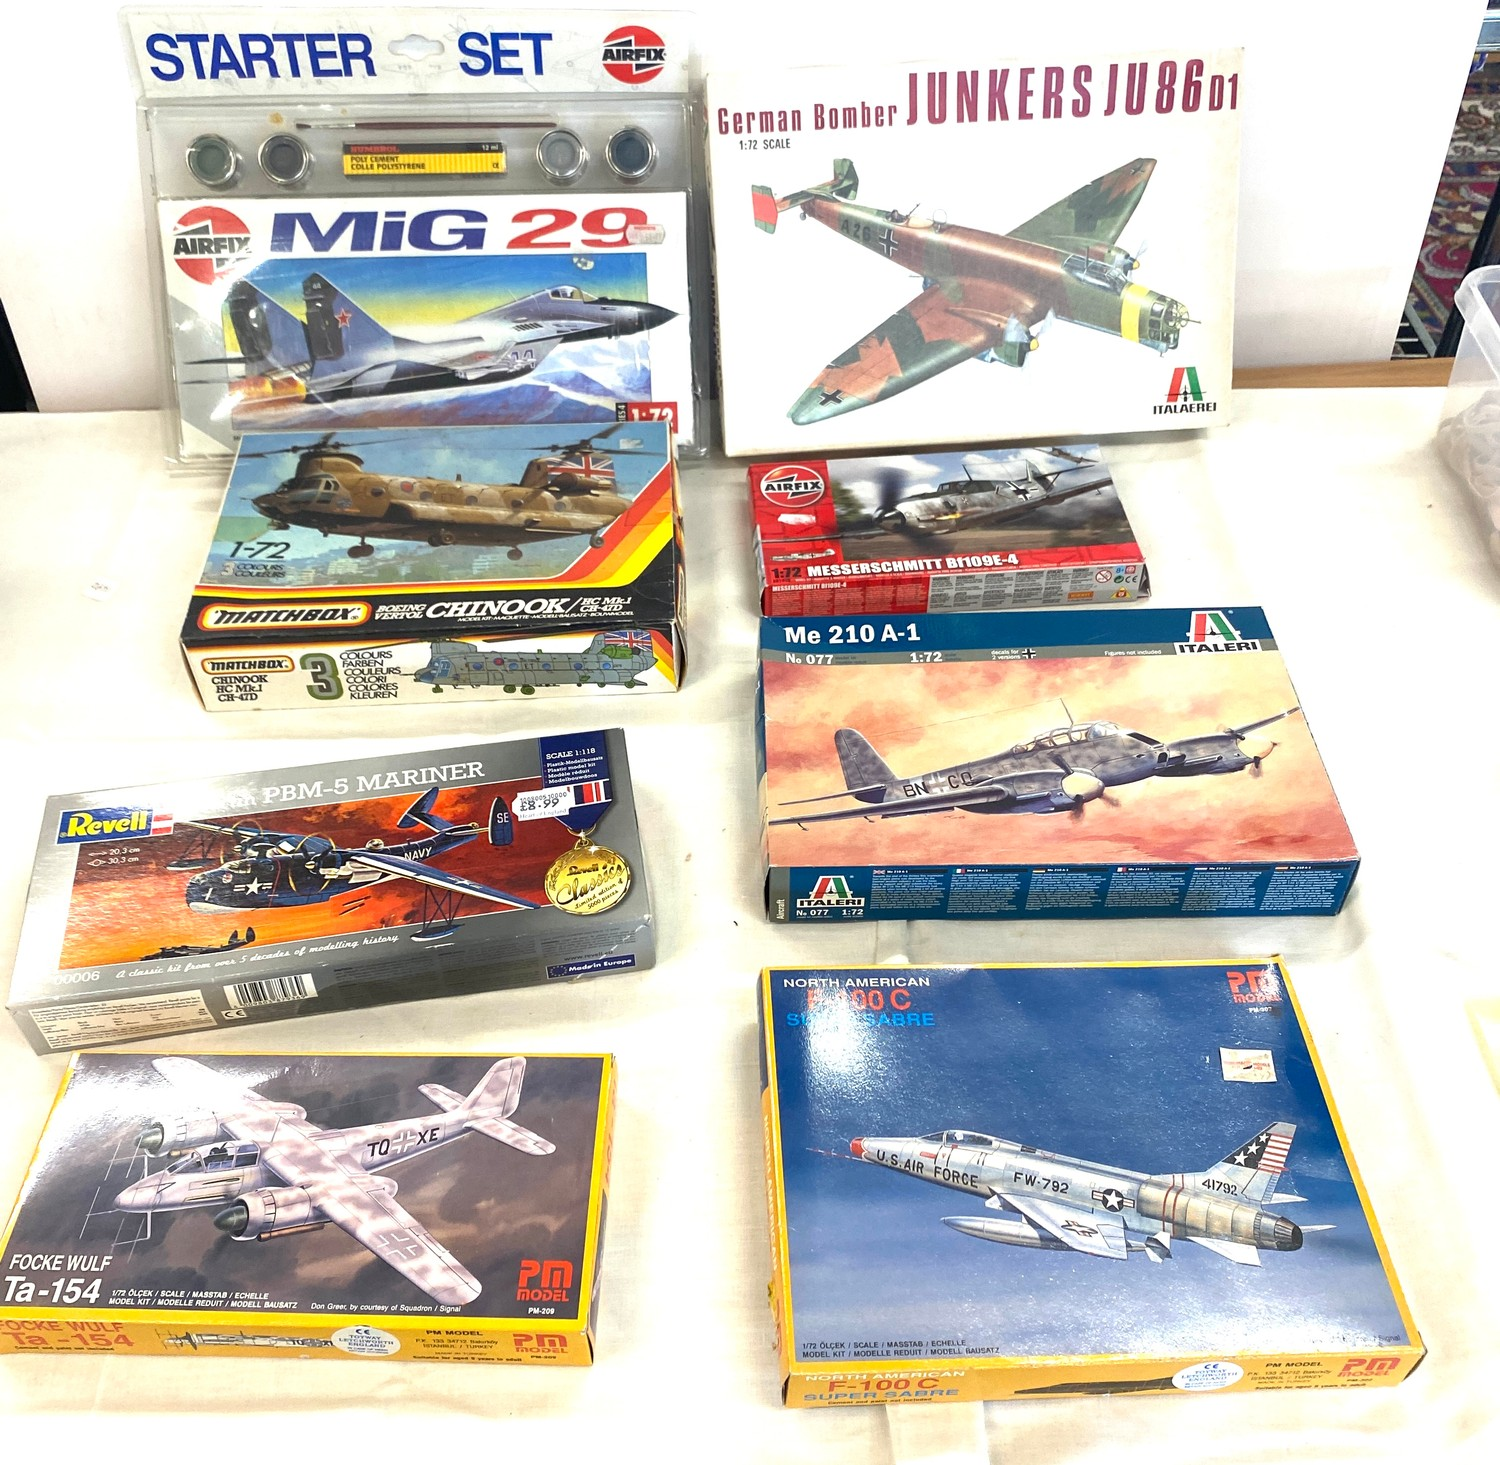 Selection of 8 boxed craft models to include, German bomber Junkers Ju86D1, Matchbox Chinook, Airfix